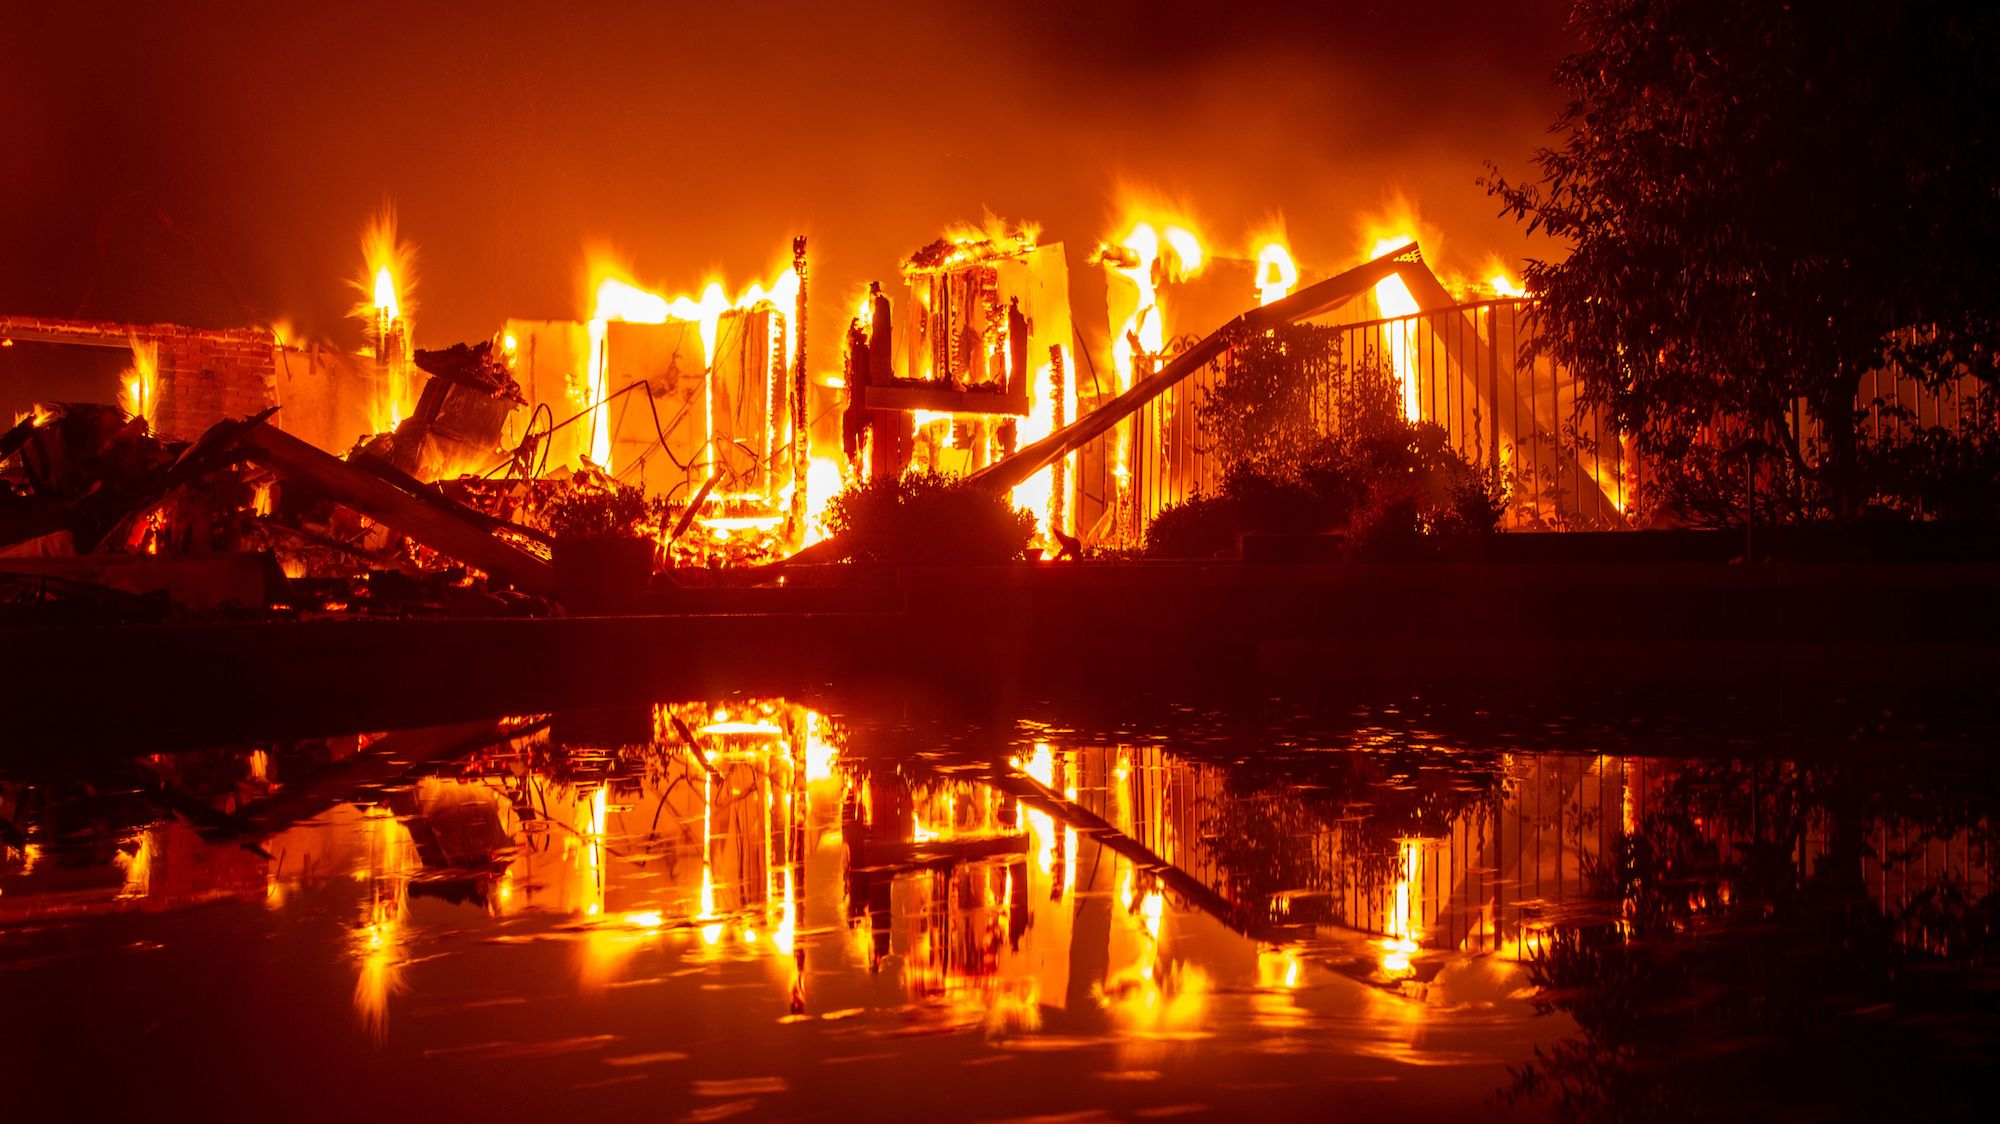 the most devastating pictures from the last 72 hours of fire in